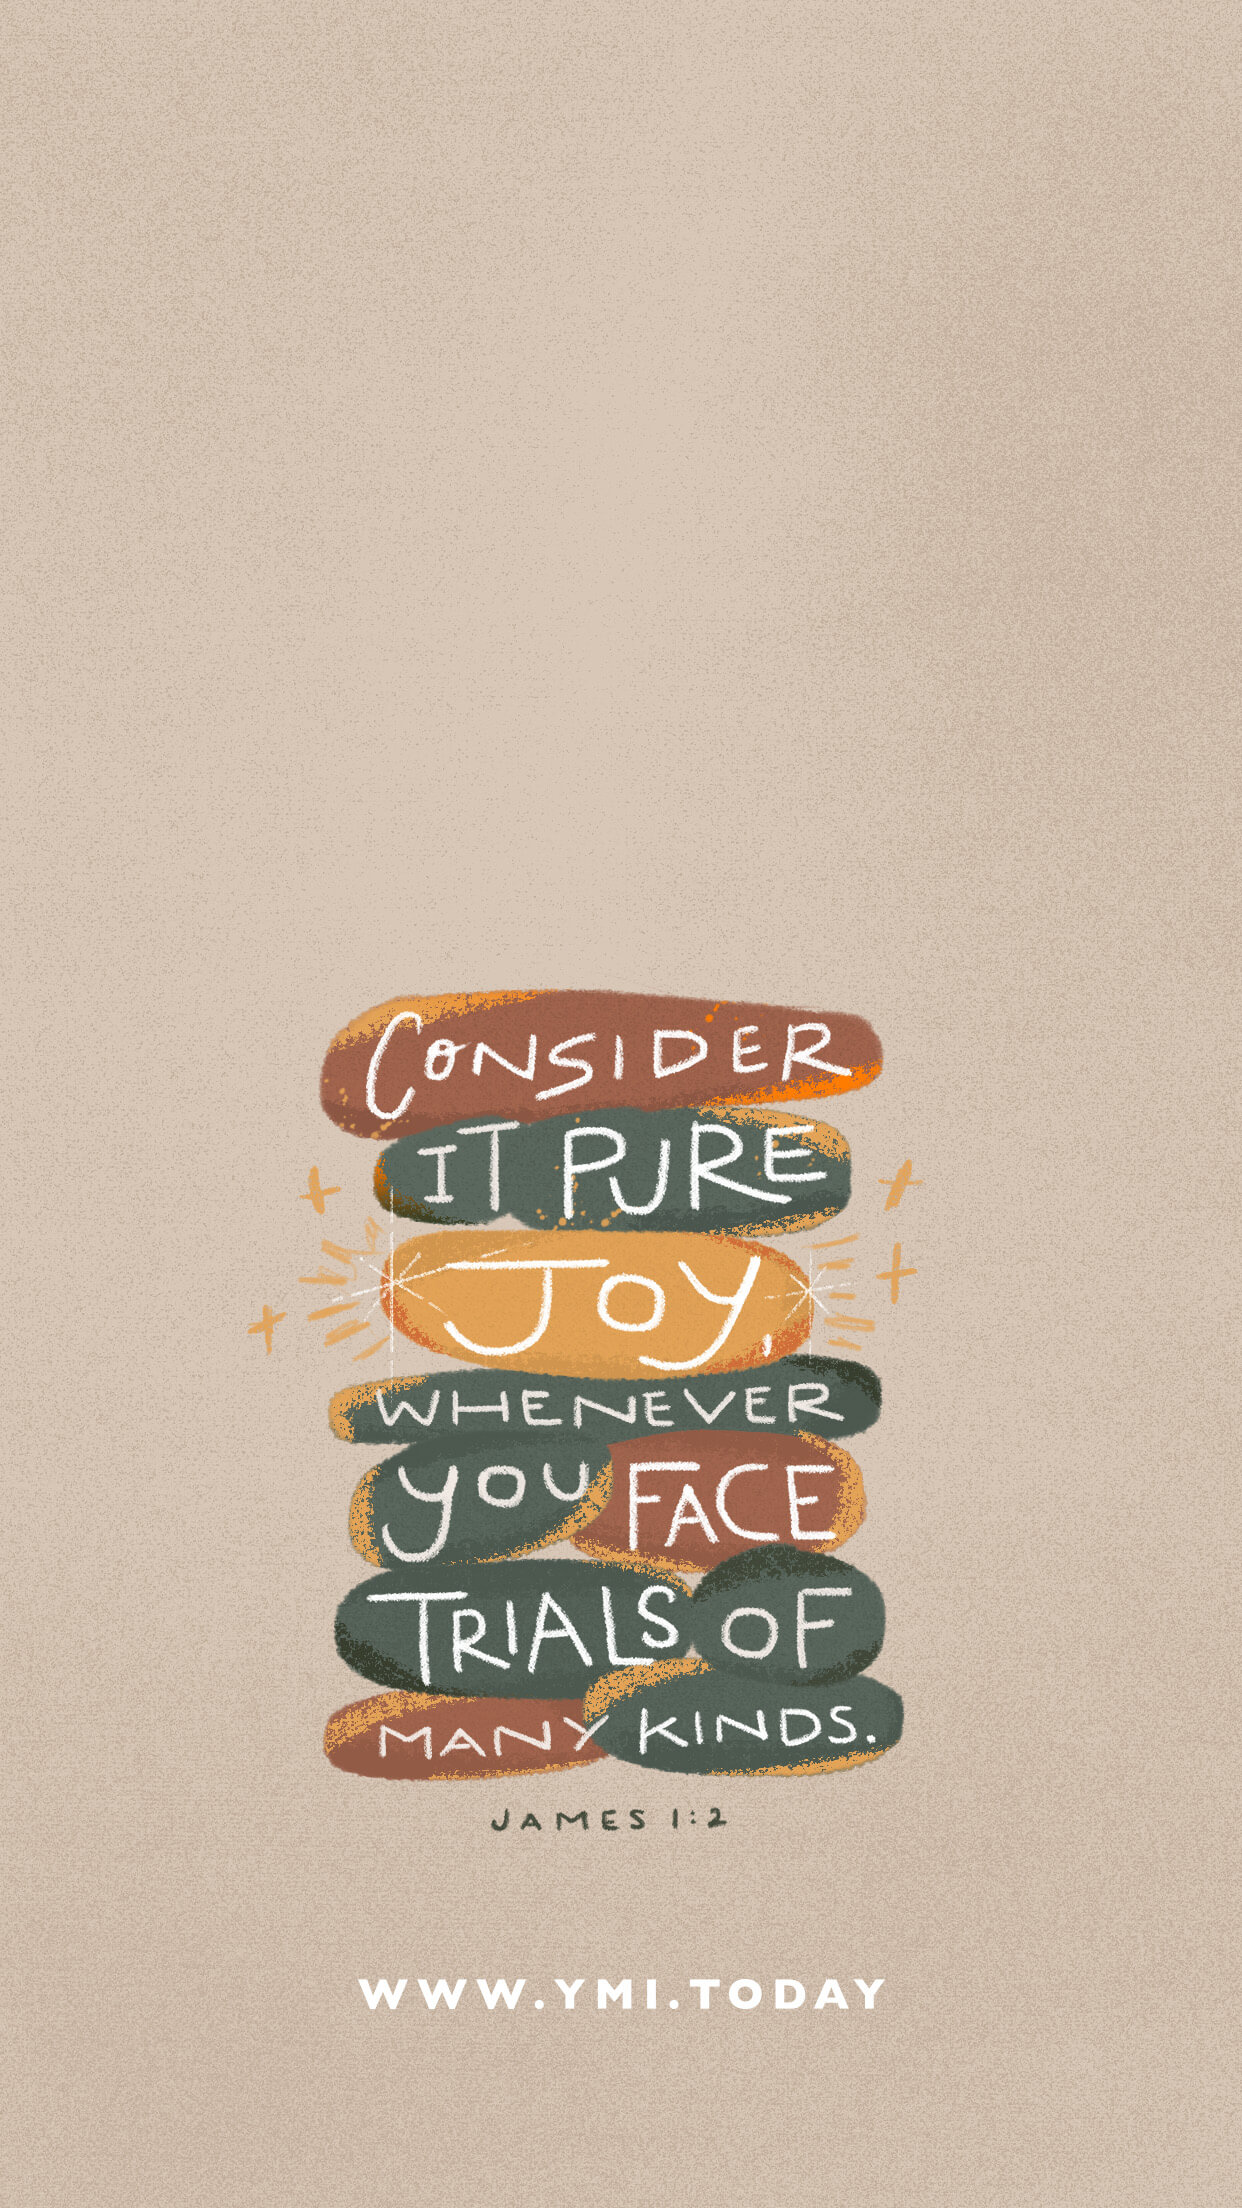 YMI April 2020 Phone Lockscreen - Consider it pure joy whenever you face trials of many kinds. - James 1:2